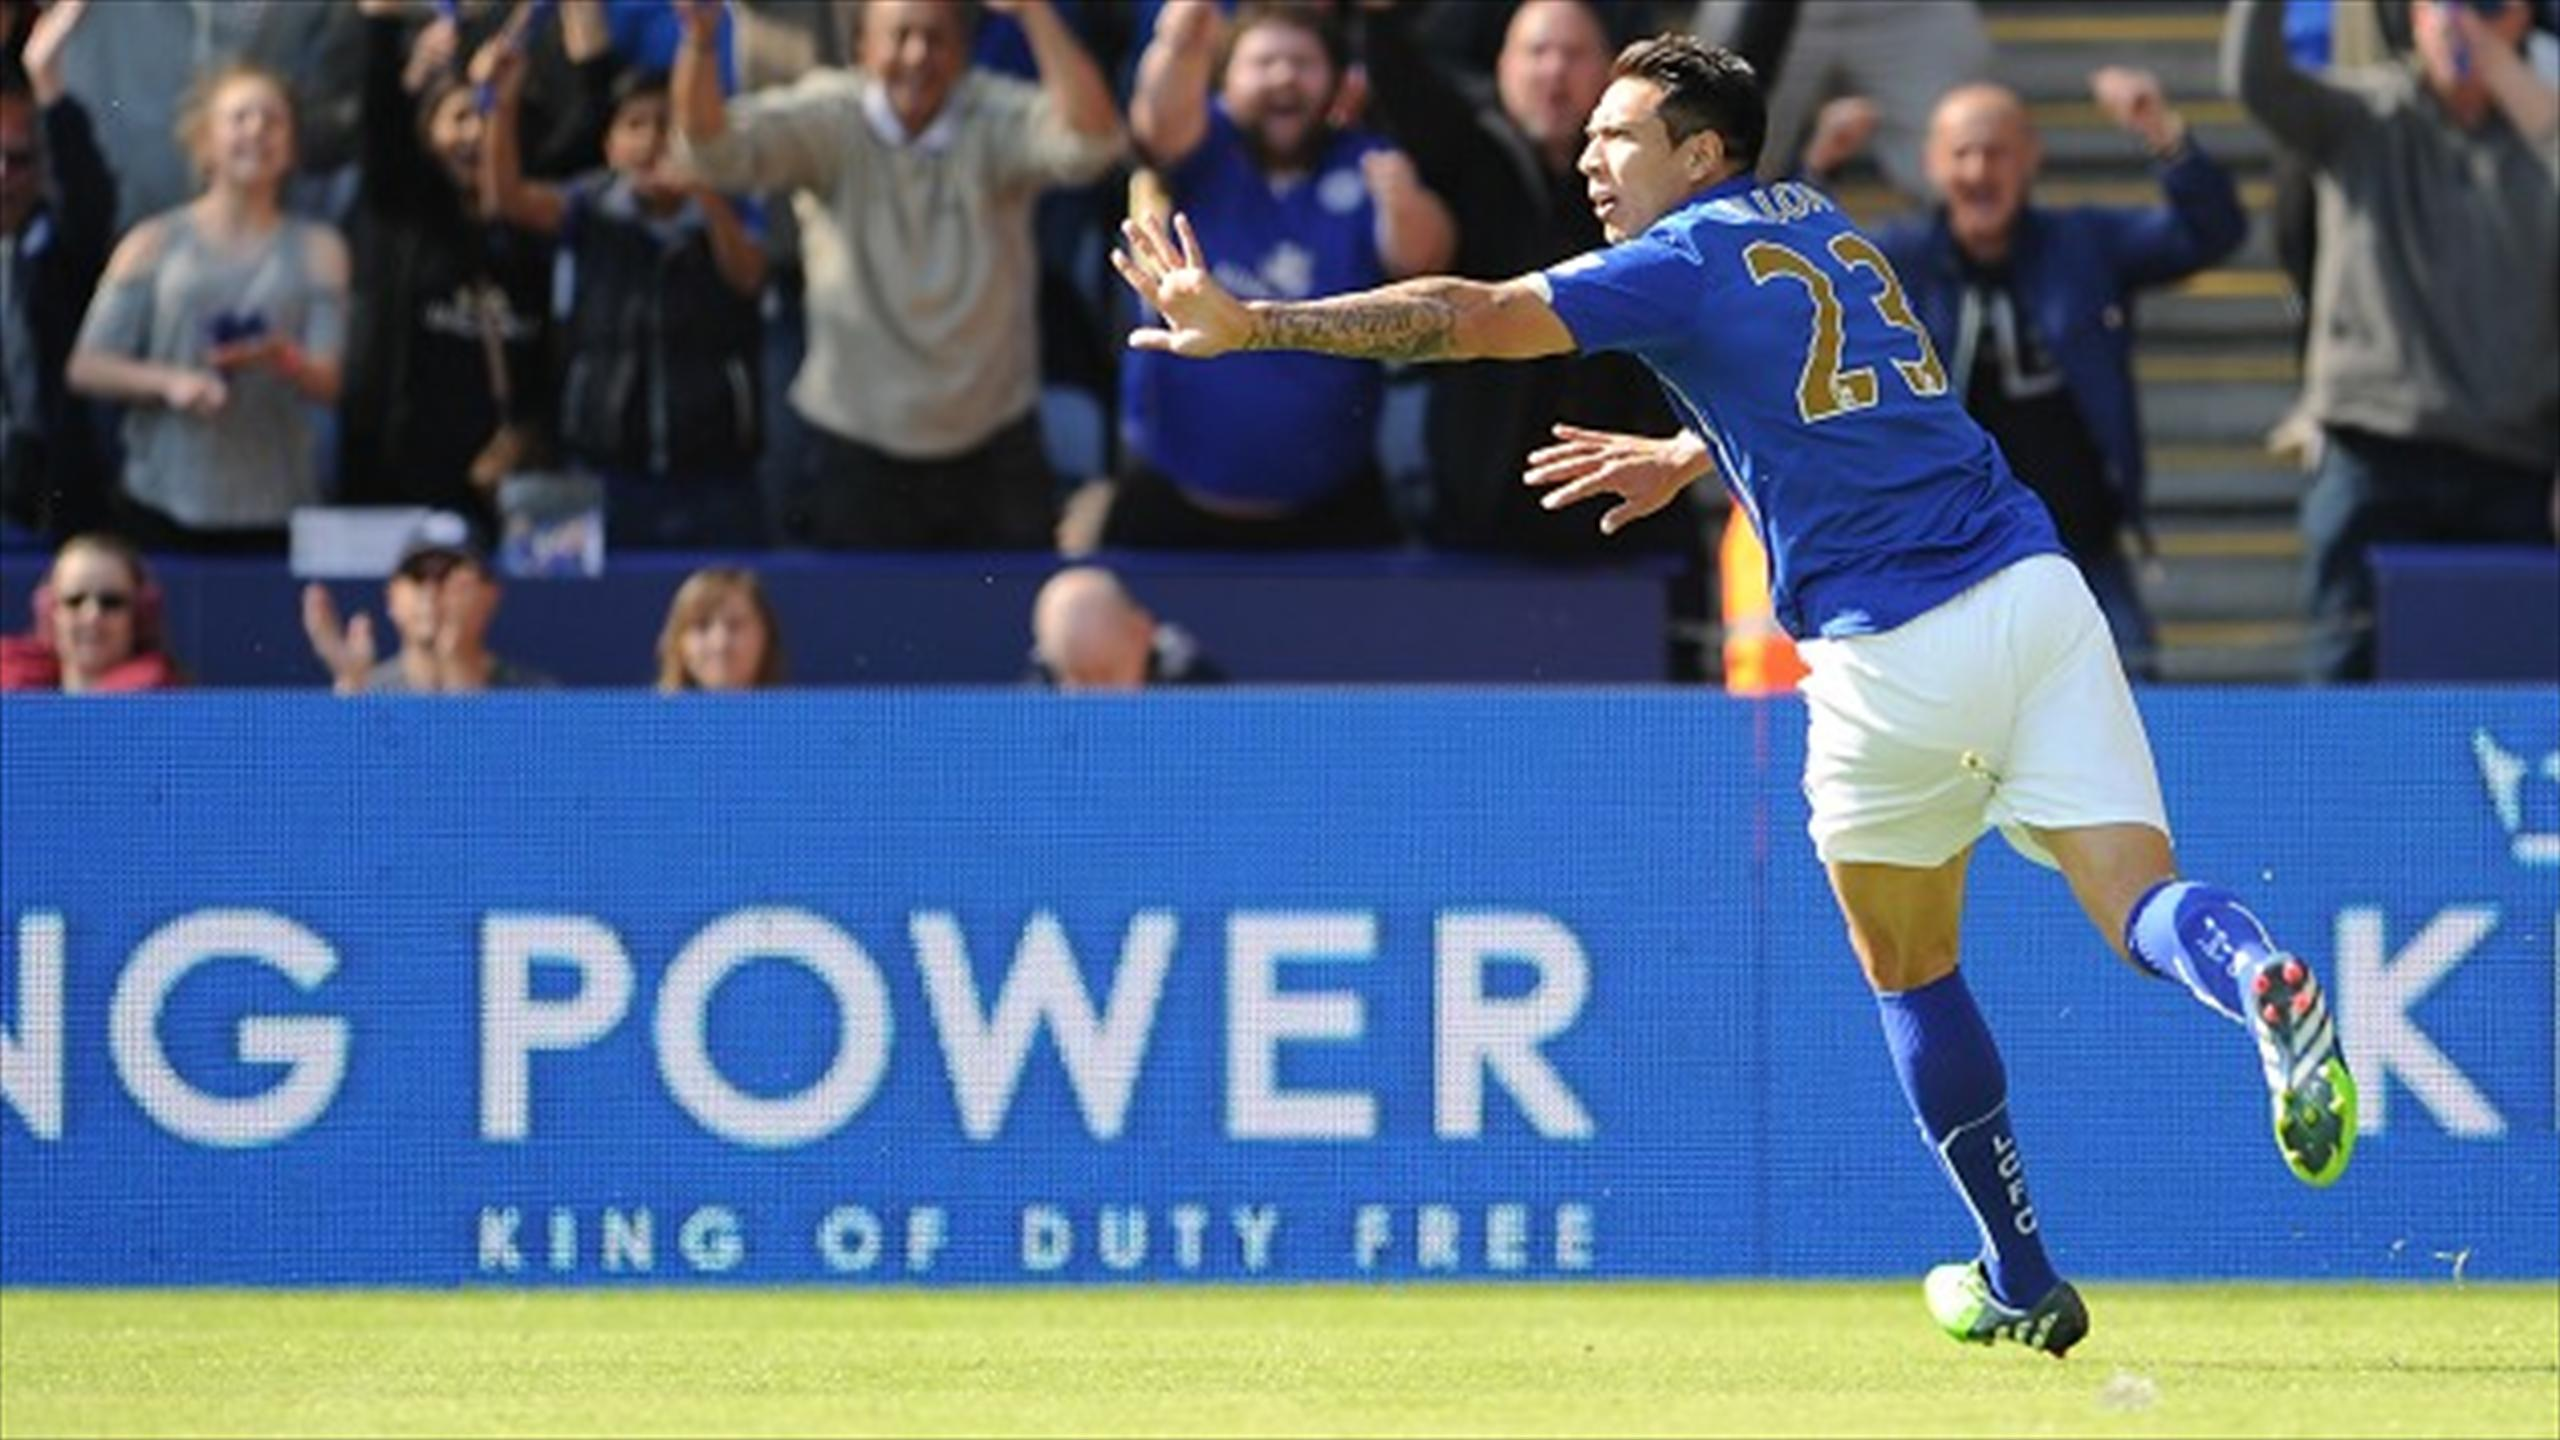 Video: Leicester City vs Swansea City